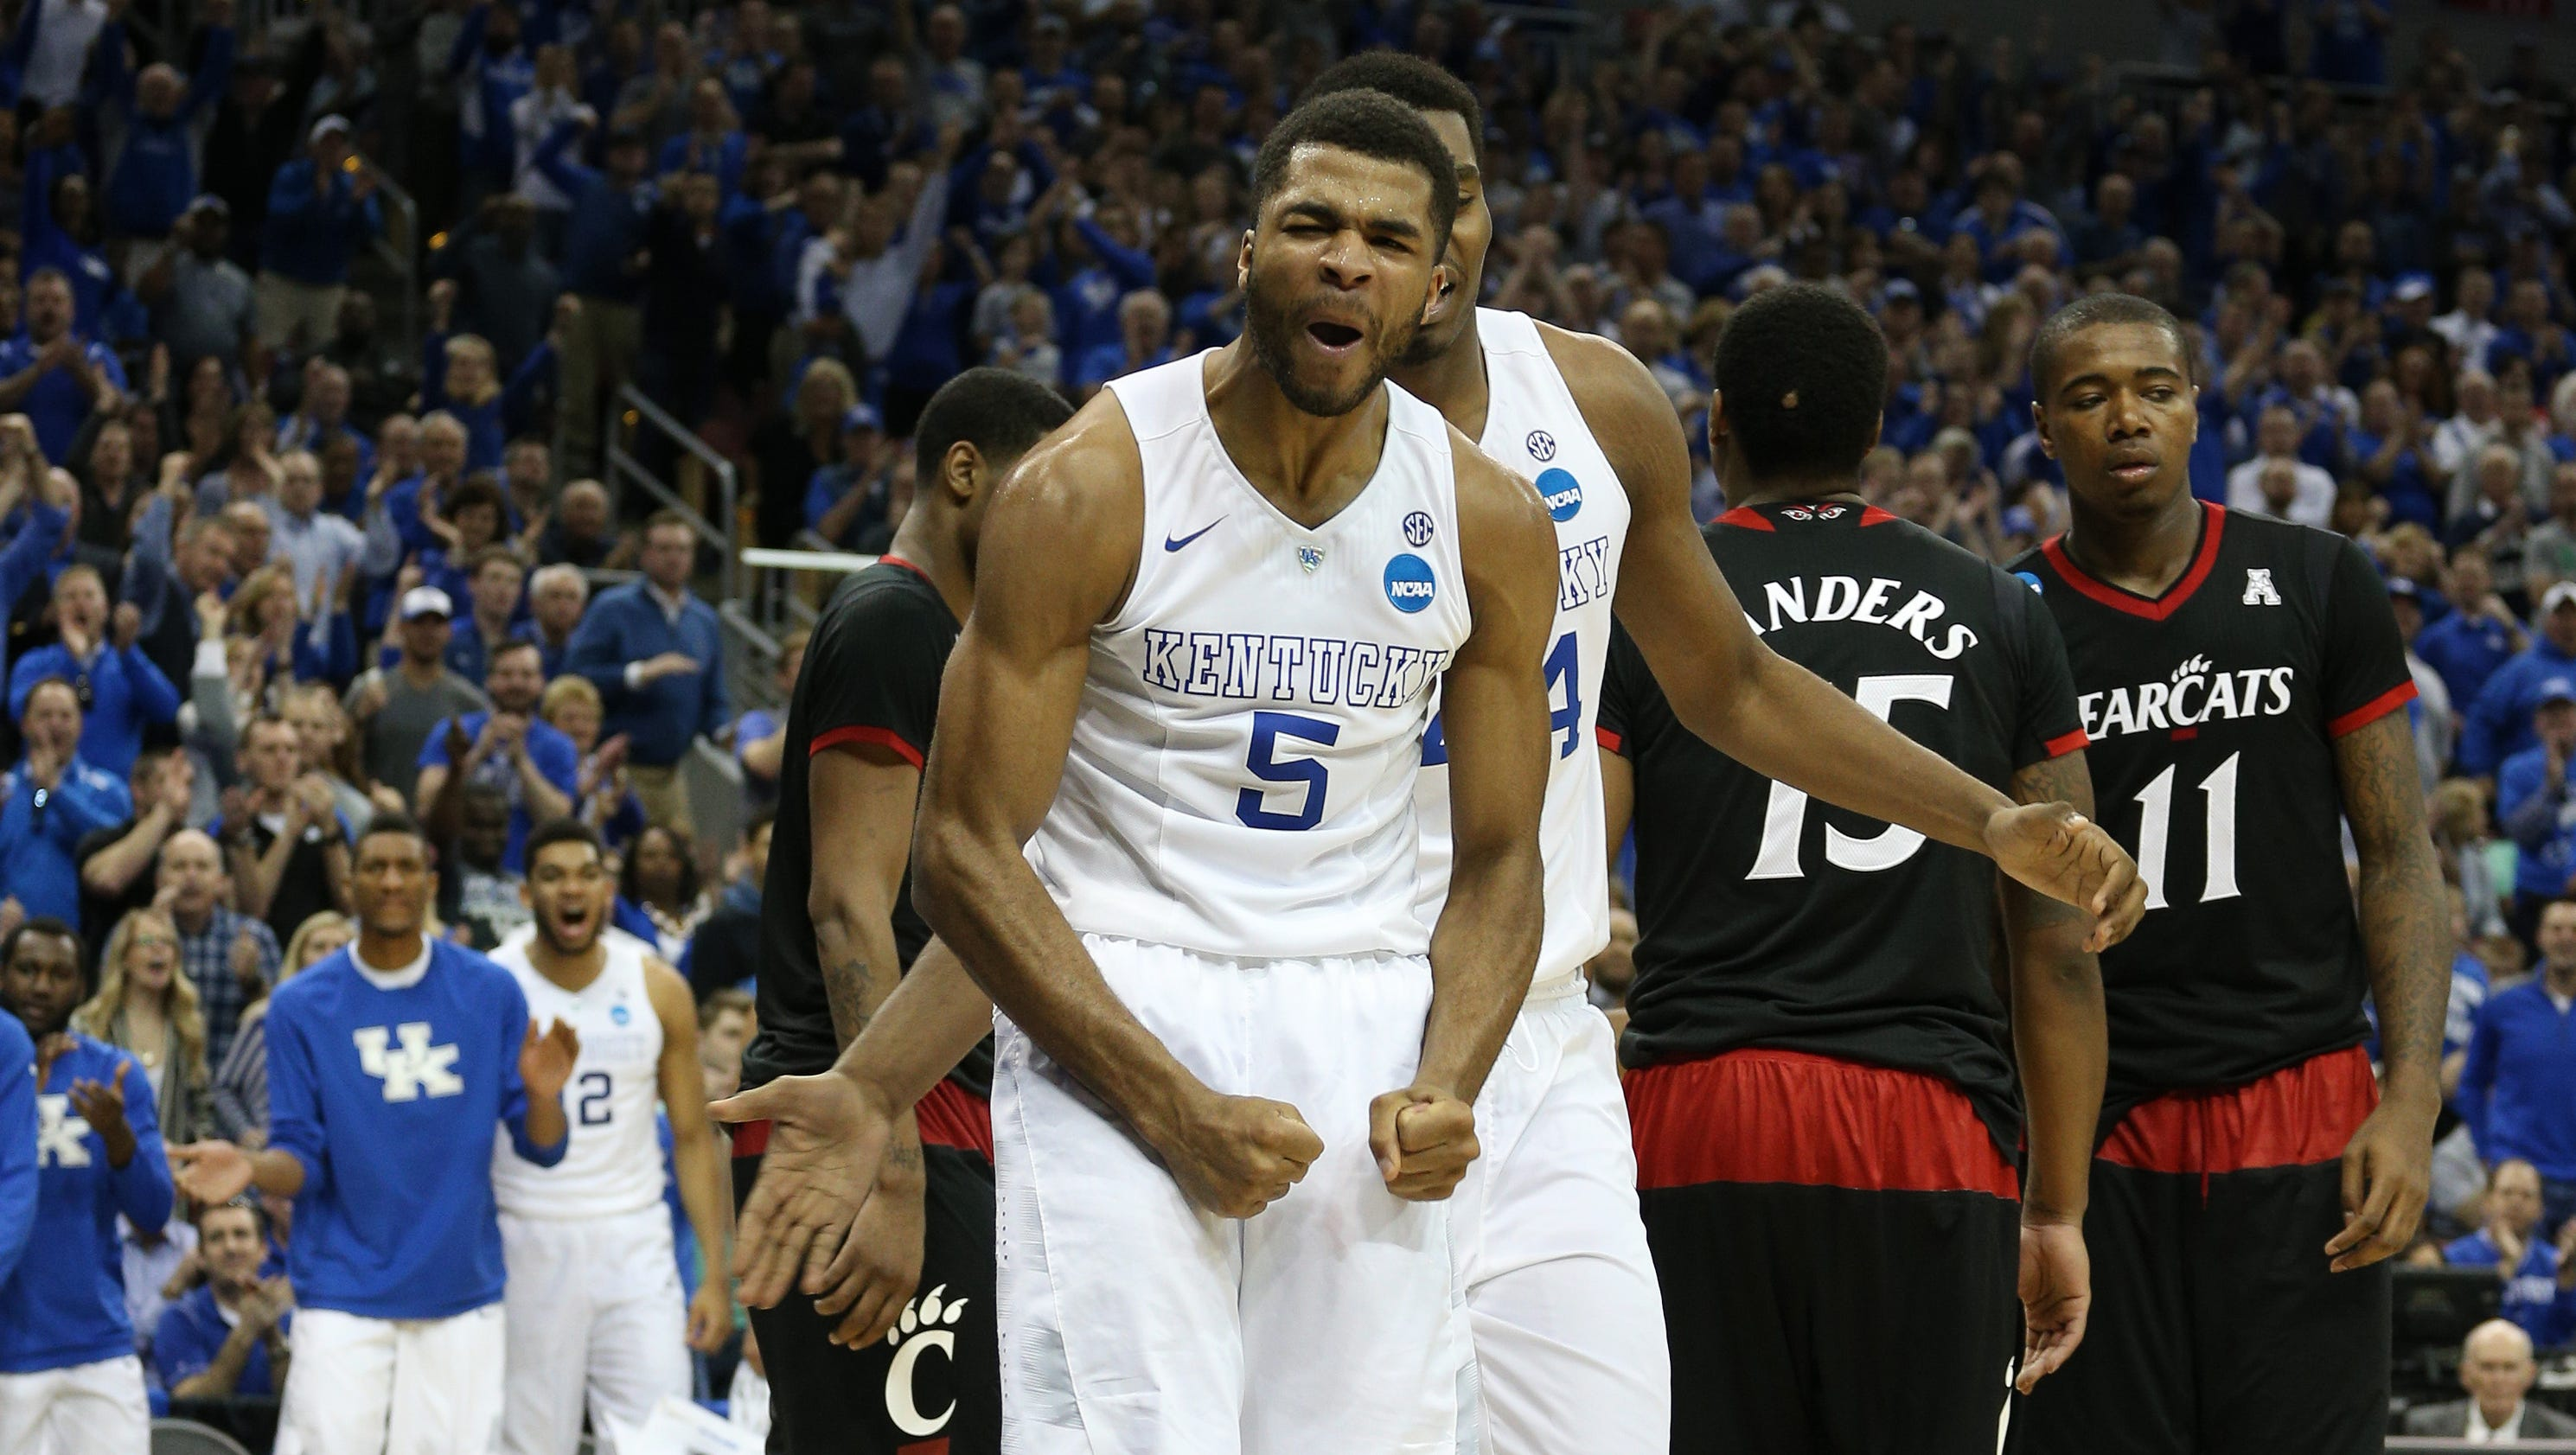 Uk Basketball: Ranking The Sweet 16 Teams Of The 2015 NCAA Tournament